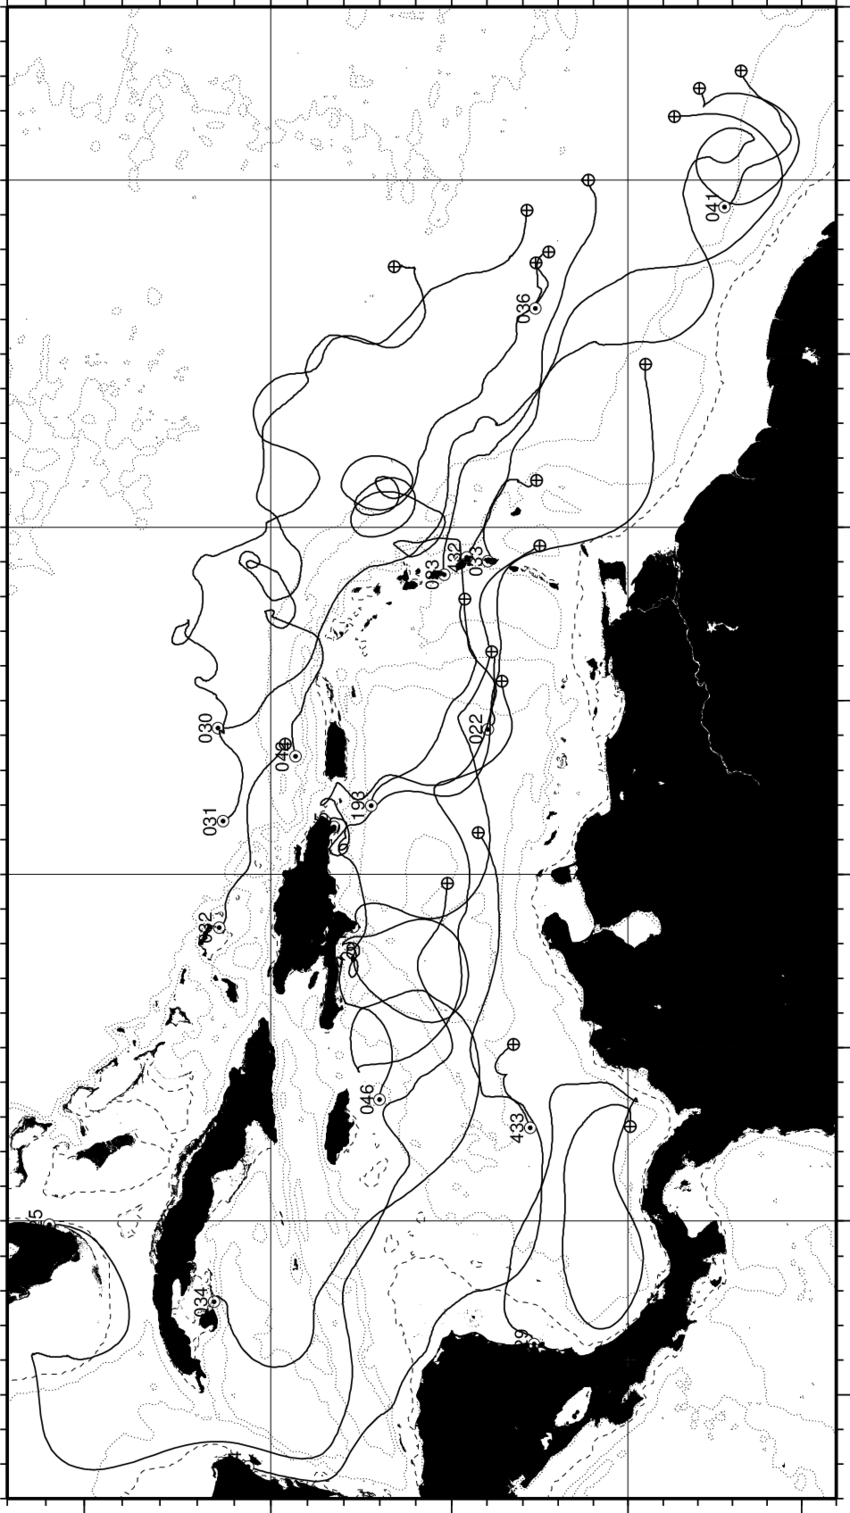 Figure C13: A summary of float trajectories after